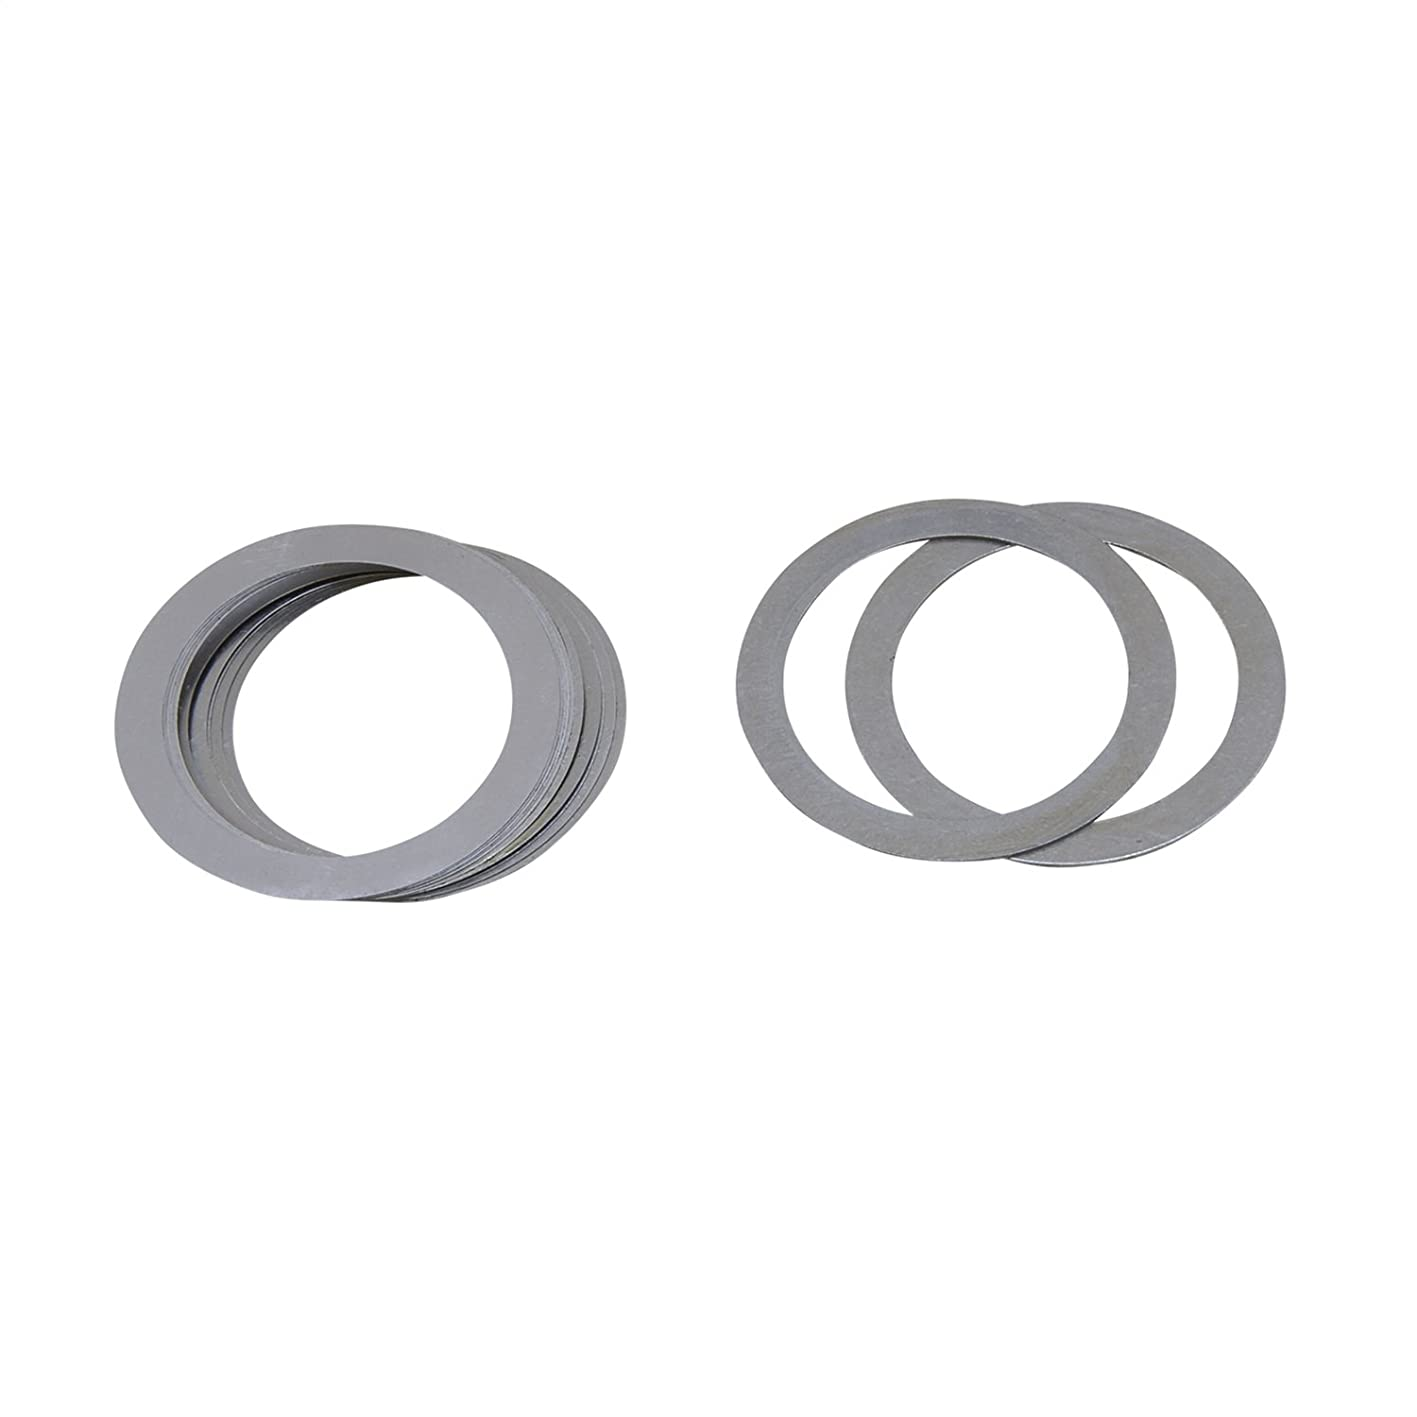 Yukon Gear & Axle (SK 706087) Replacement Carrier Shim Kit for Dana 30/44 Differential with 19-Spline Axle jqgxprrtqpe691